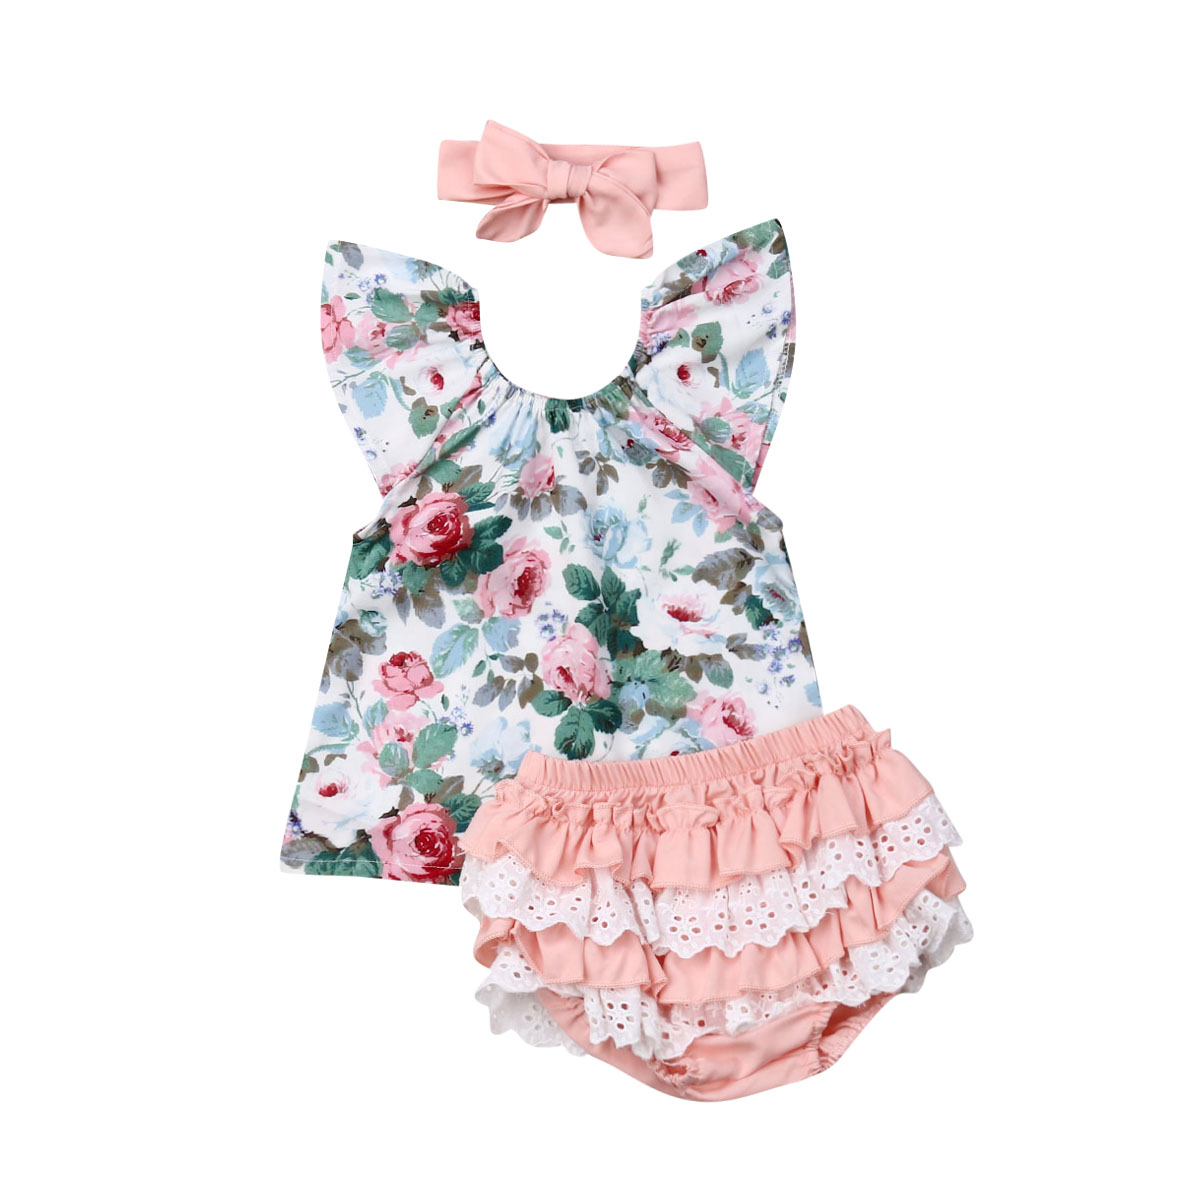 Newborn Baby Girls 3M-3T Princess Floral Dress Tops Lace Shorts 3pcs Kids Outfits Sets Baby Girls Clothes Set Girls Clothing Set